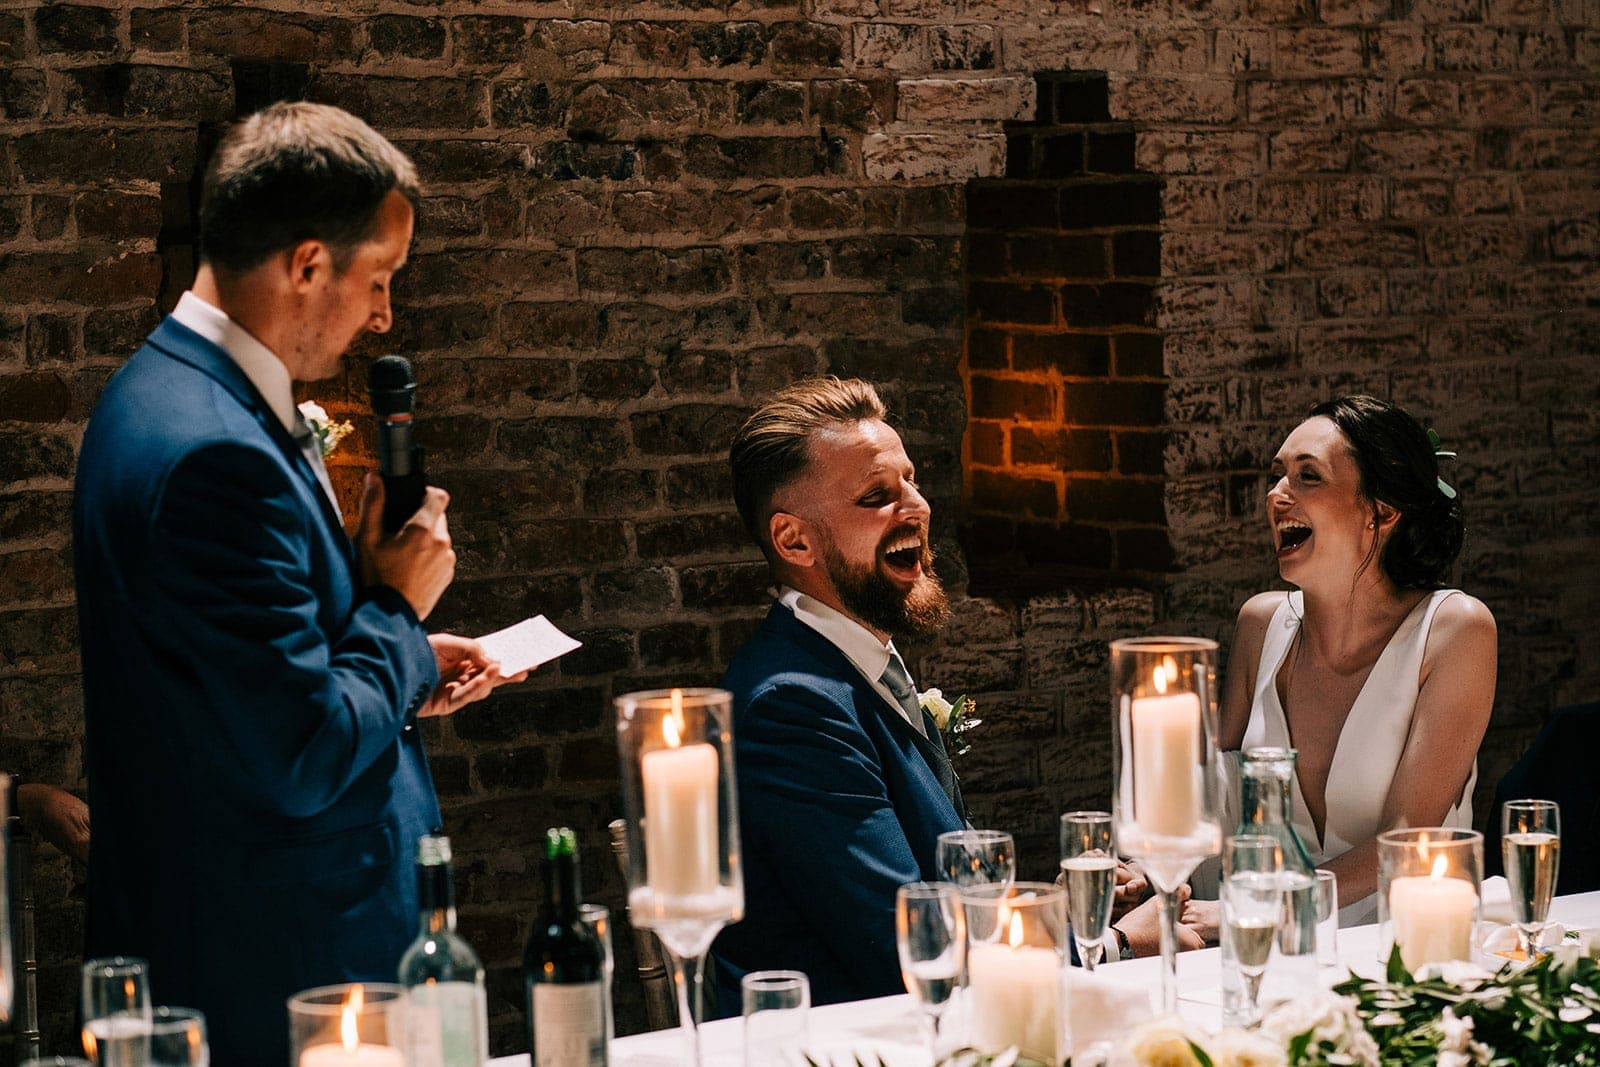 Jack's best man makes a joke during his speech